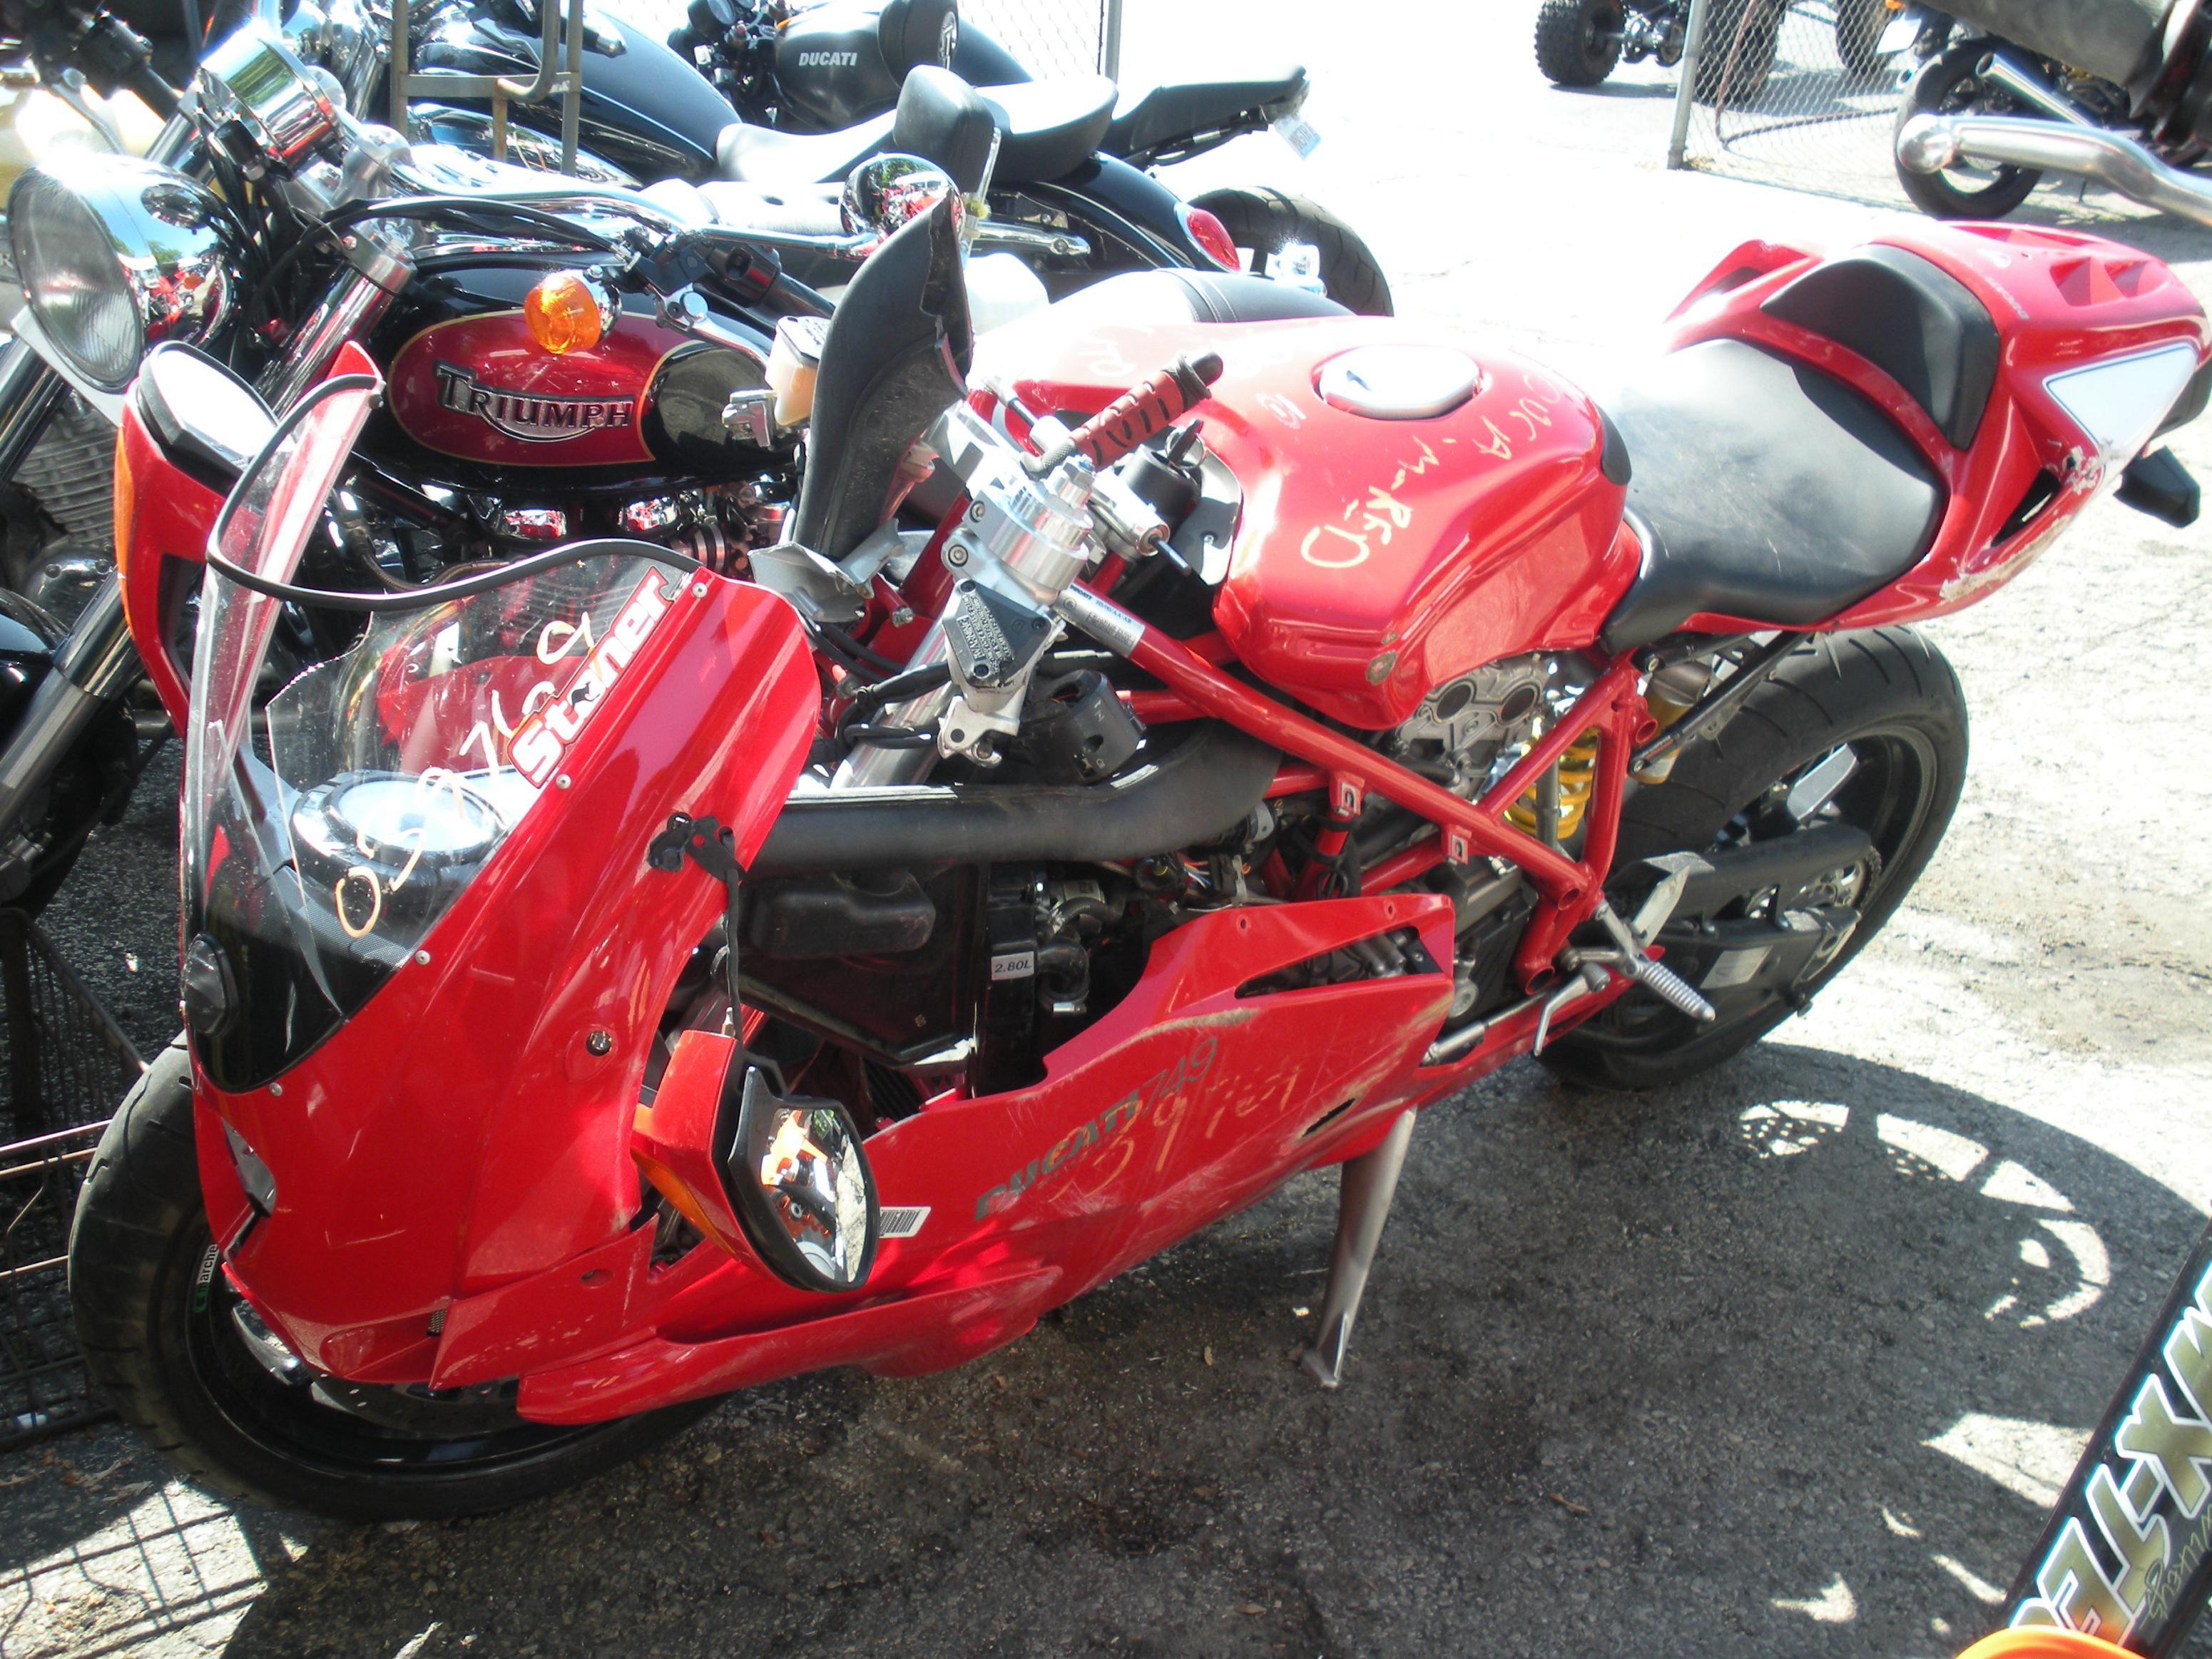 http://www.ducati.org/forums/attachments/gear/25511d1265482842-crash-thread-warning-disgusting-pictures-dscn0069.jpg